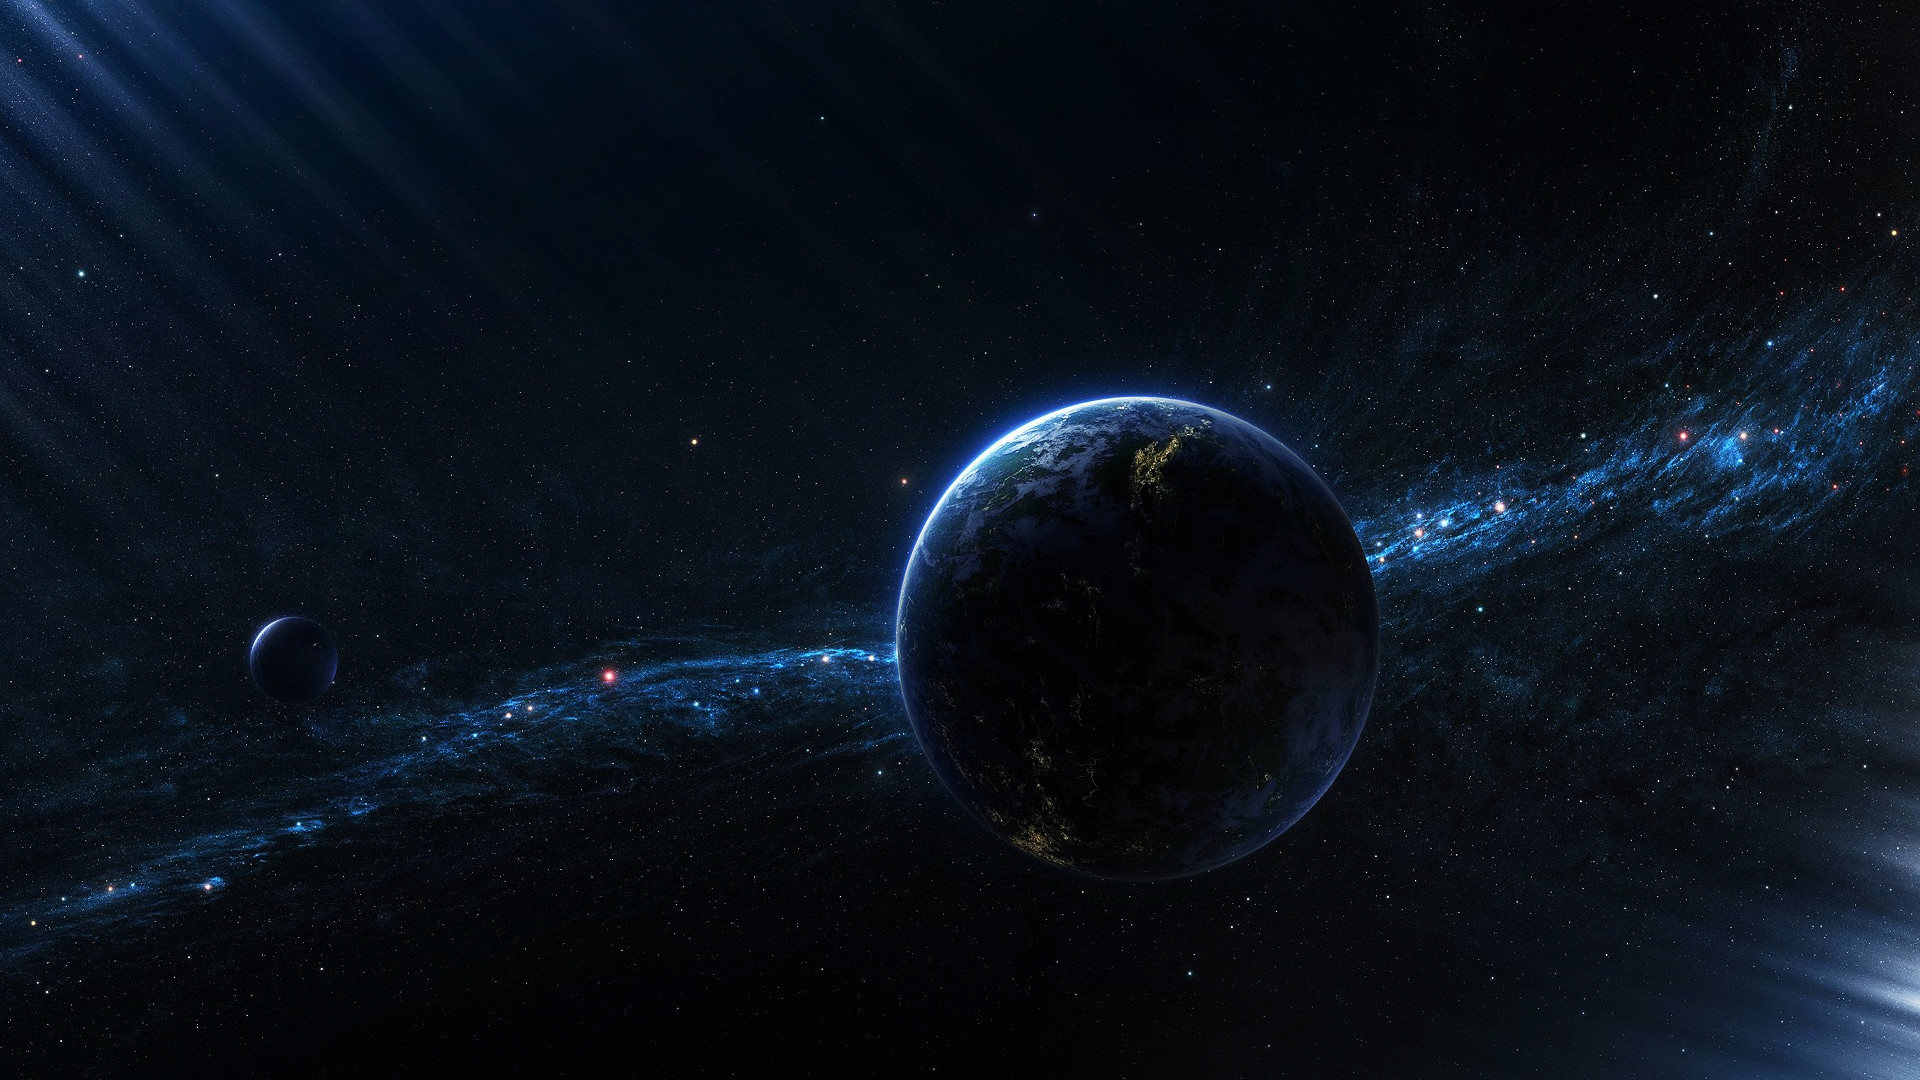 Space Wallpapers : Get Free top quality Space Wallpapers  for your desktop PC background